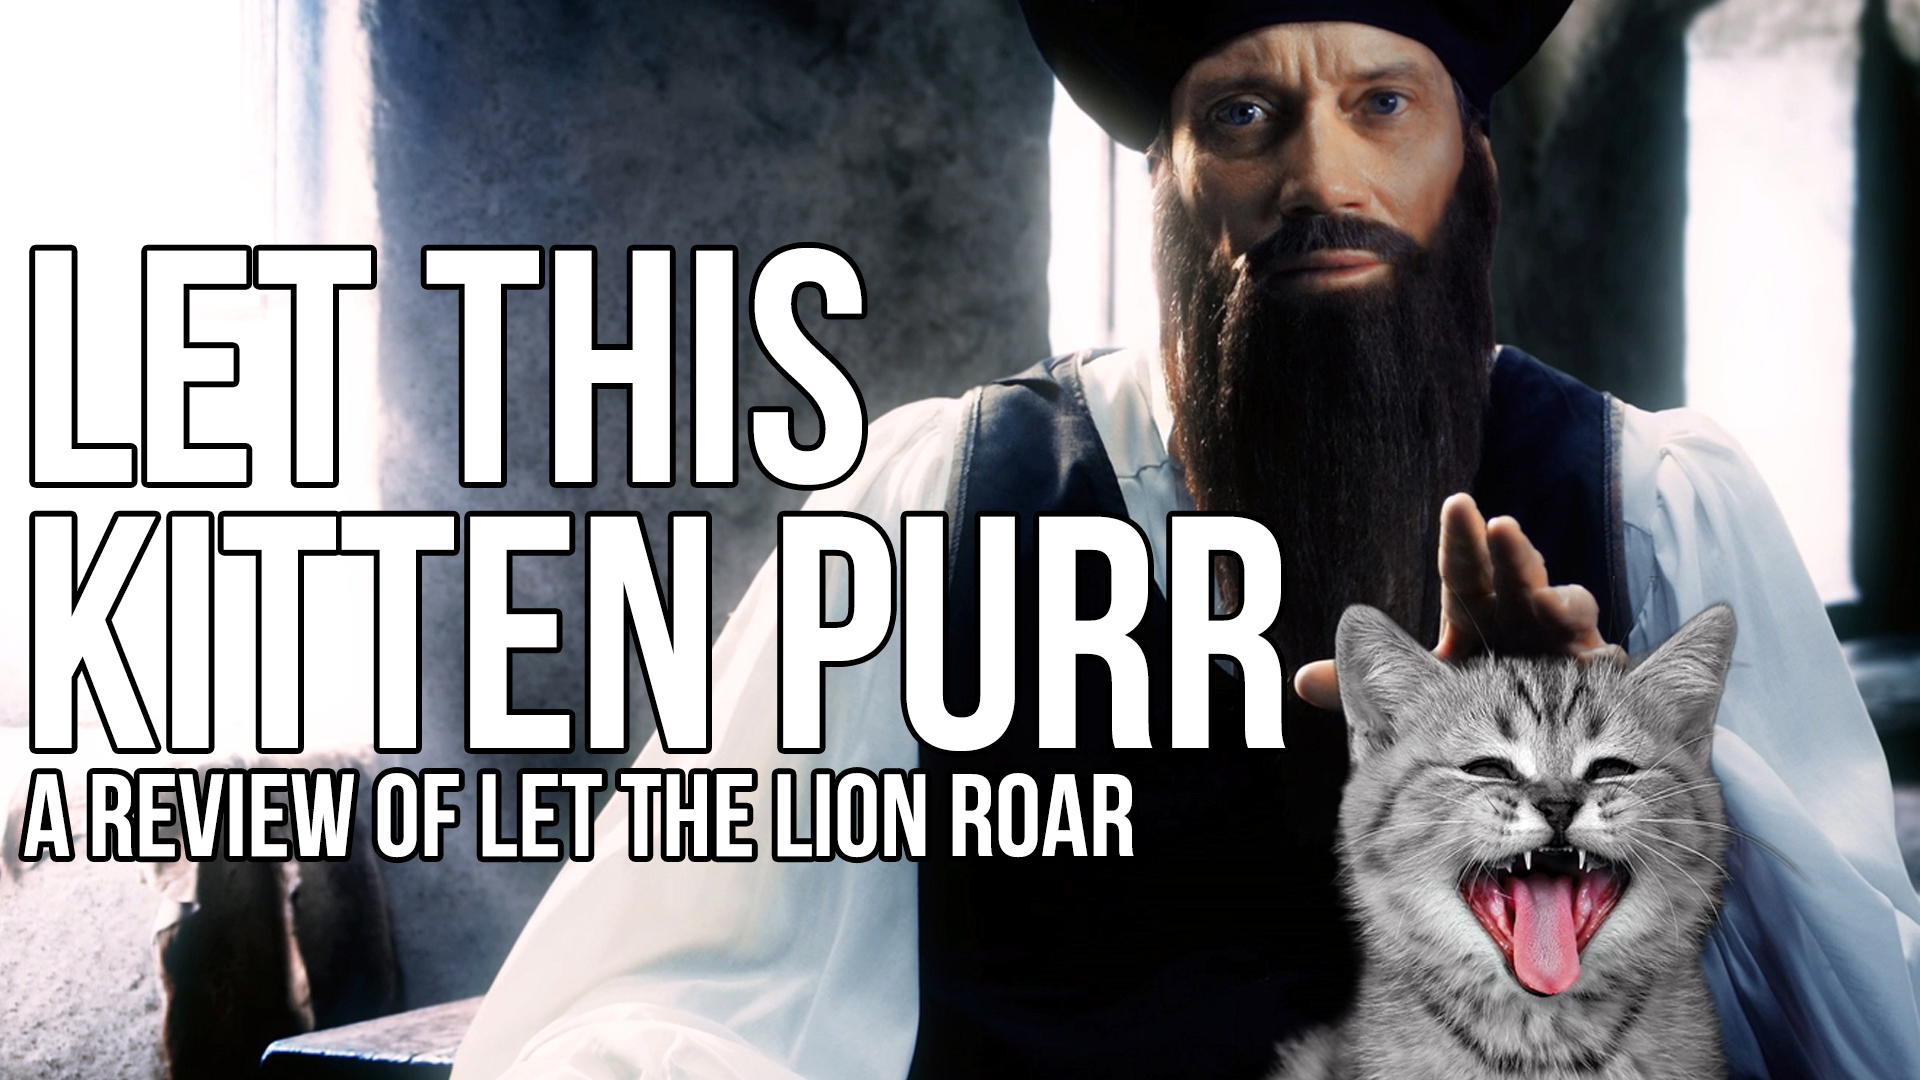 Let this Kitten Purr – A Review of Let the Lion Roar